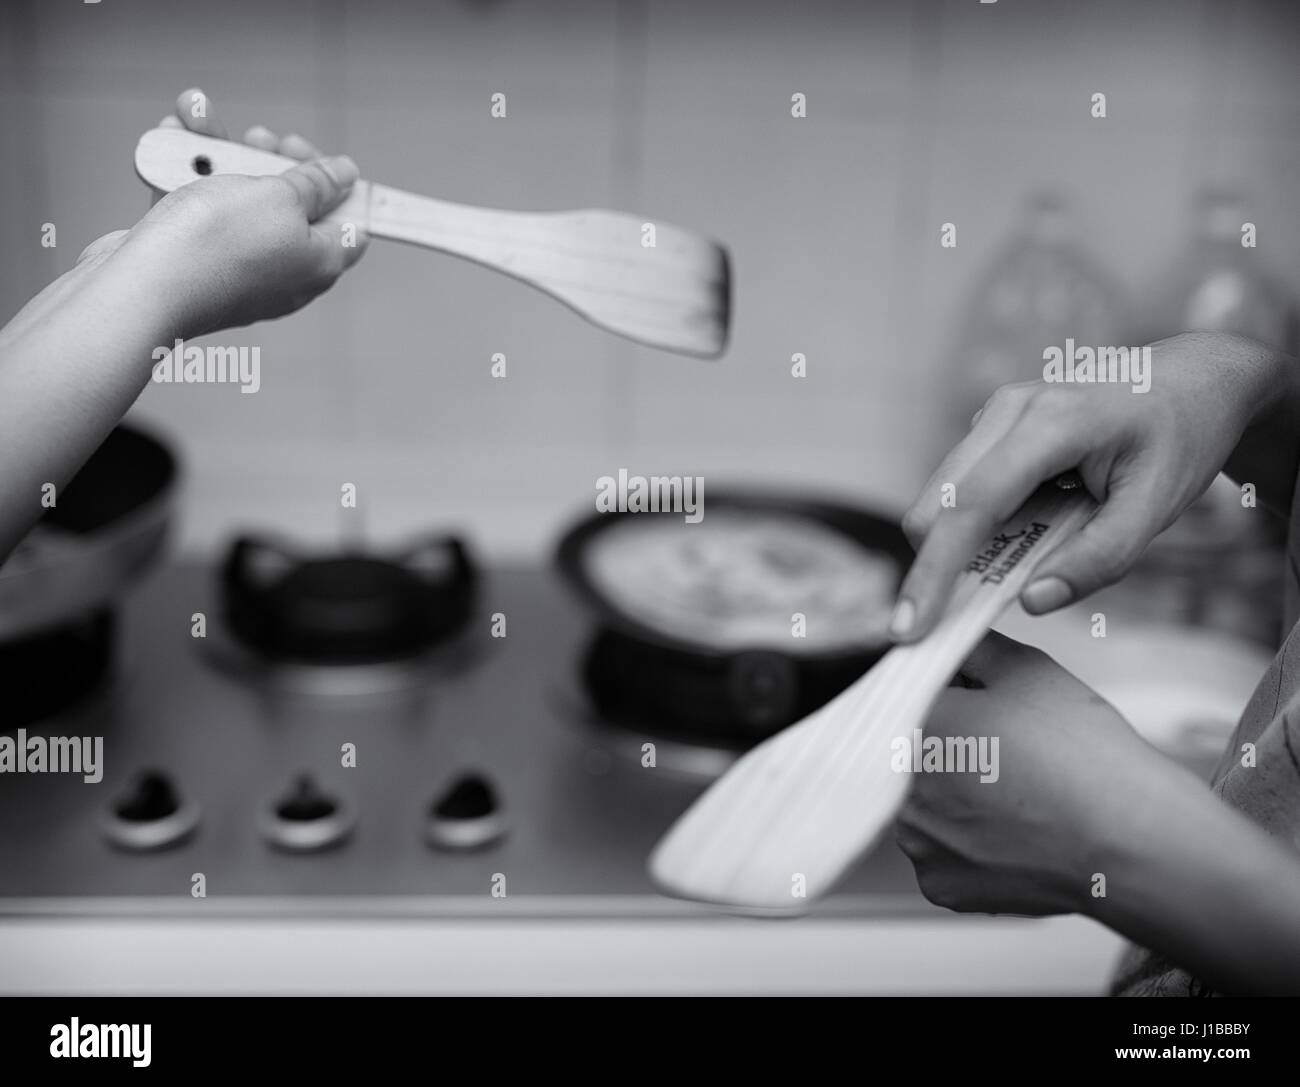 Home cooking (hands) - Stock Image